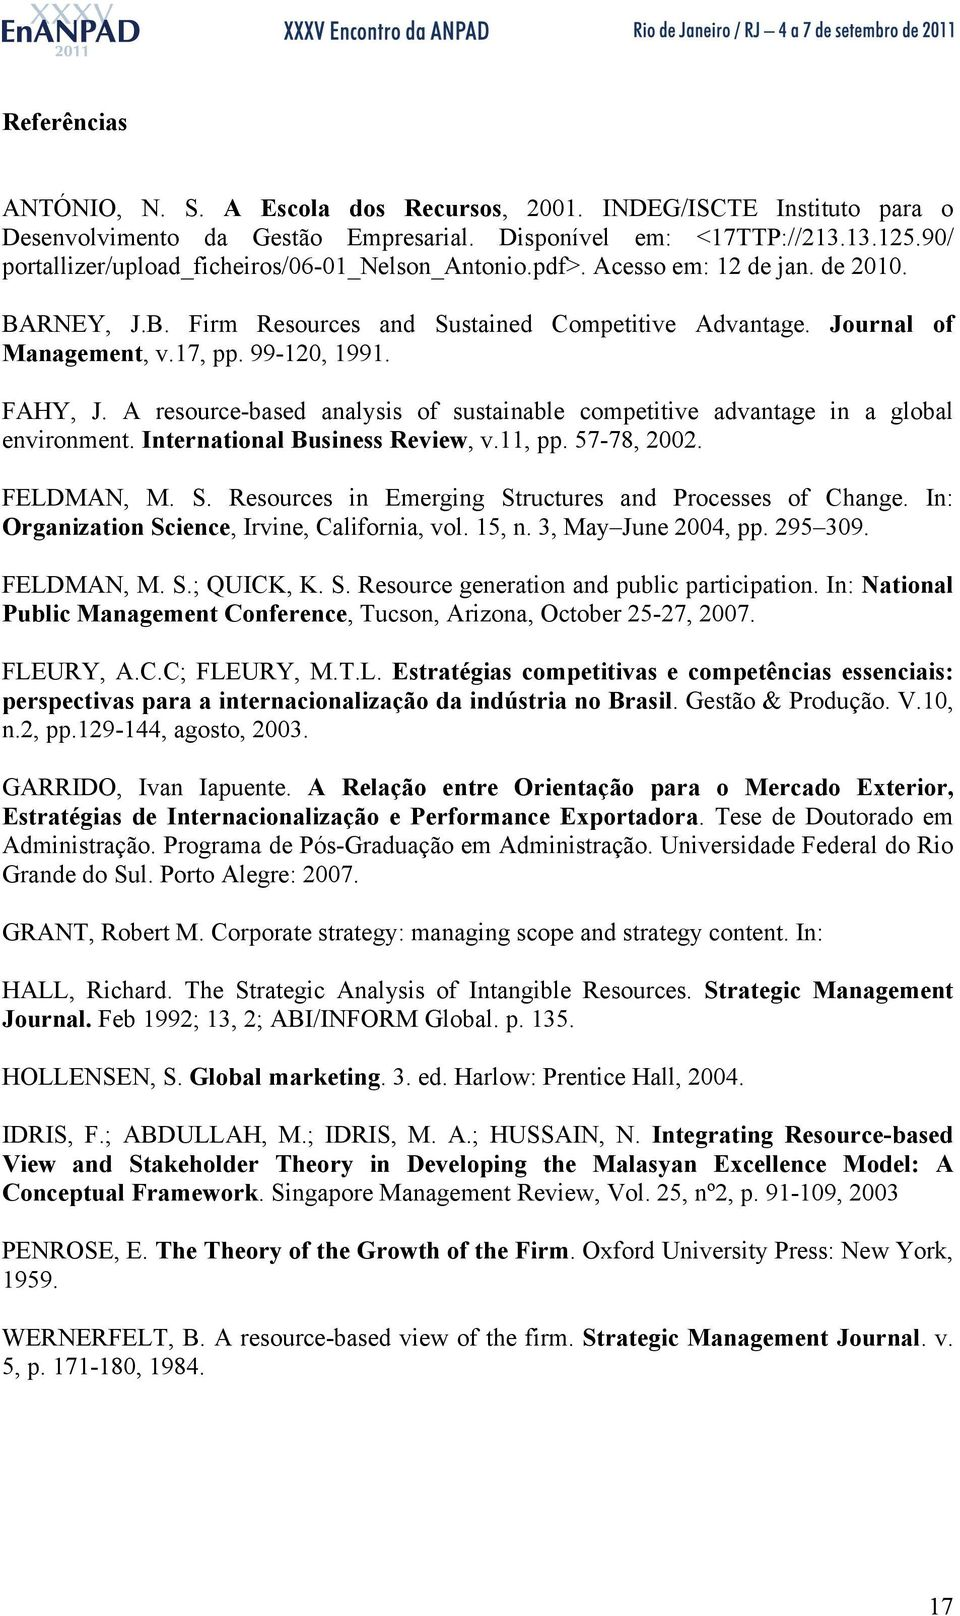 99-120, 1991. FAHY, J. A resource-based analysis of sustainable competitive advantage in a global environment. International Business Review, v.11, pp. 57-78, 2002. FELDMAN, M. S.